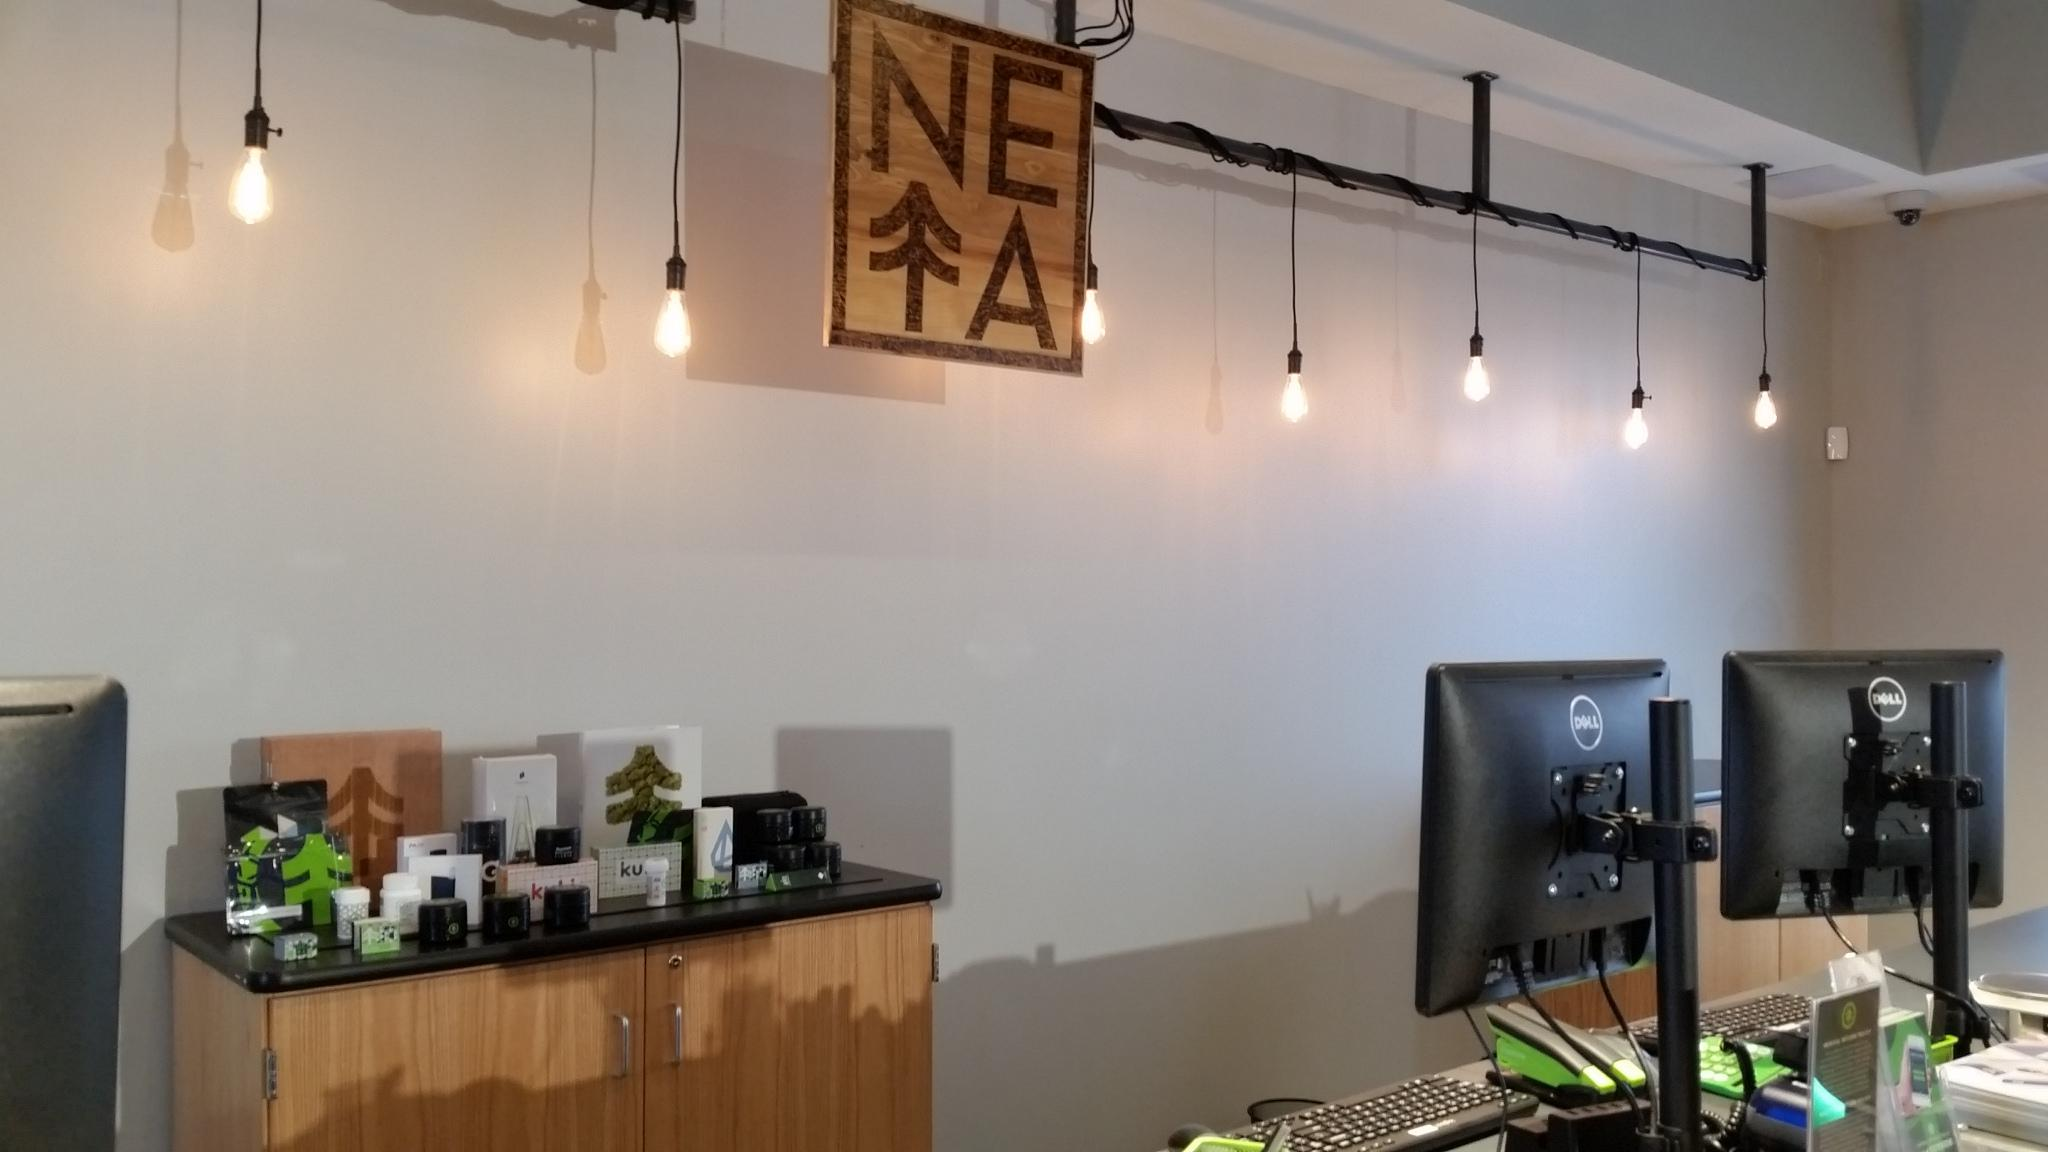 Northampton Store Is One Of The First Legal Pot Shops In